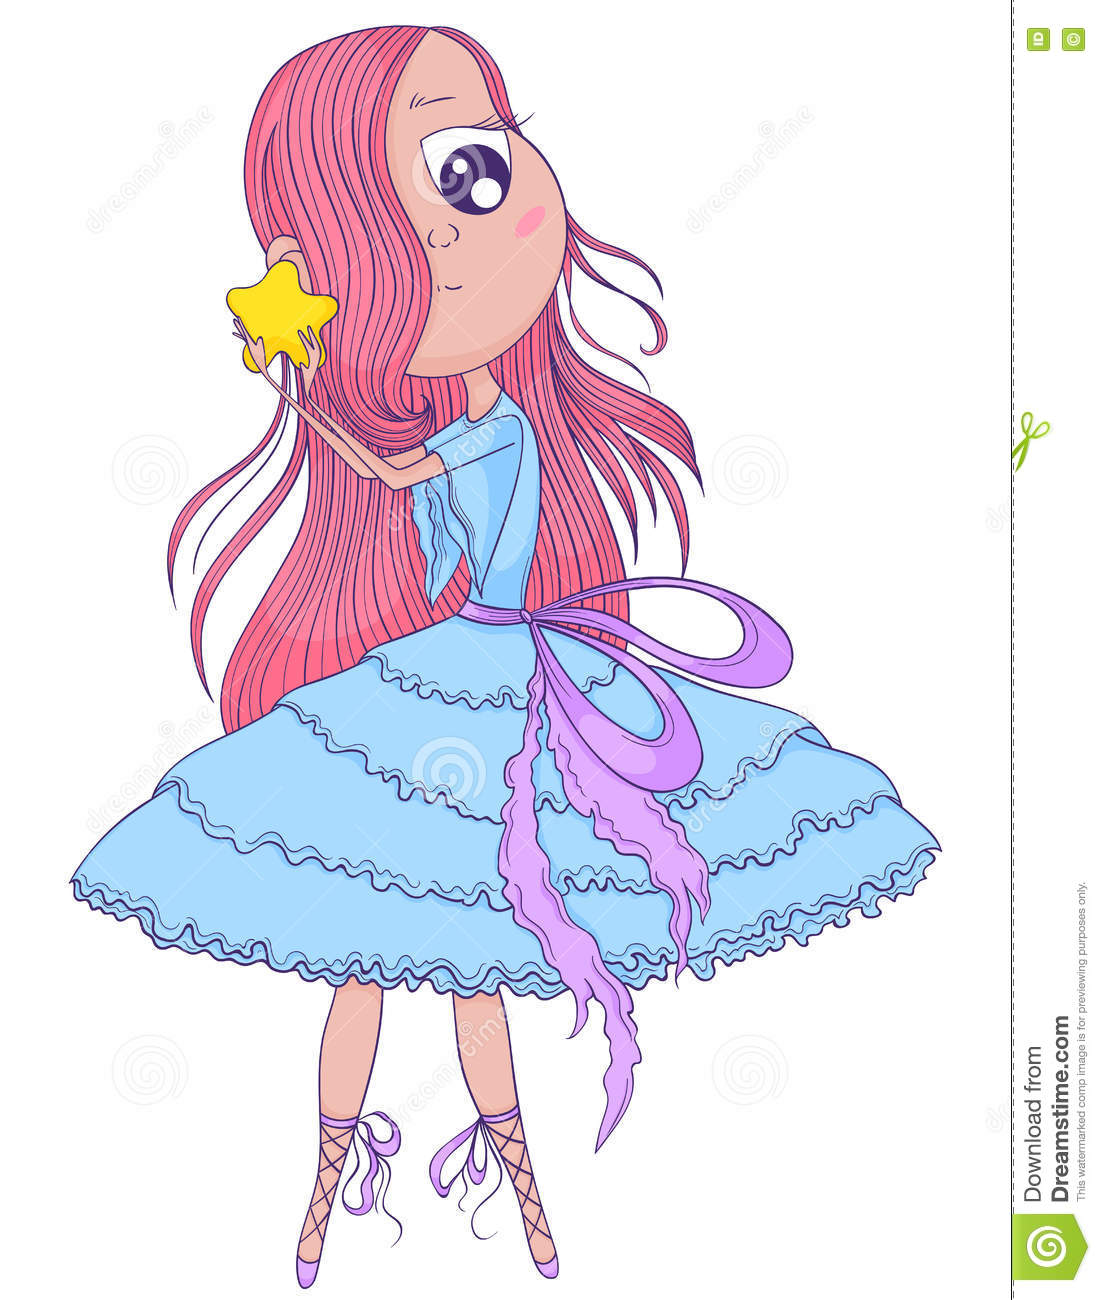 Anime Characters Holding Hands : Cute anime ballerina with pink hair in tutu holding her